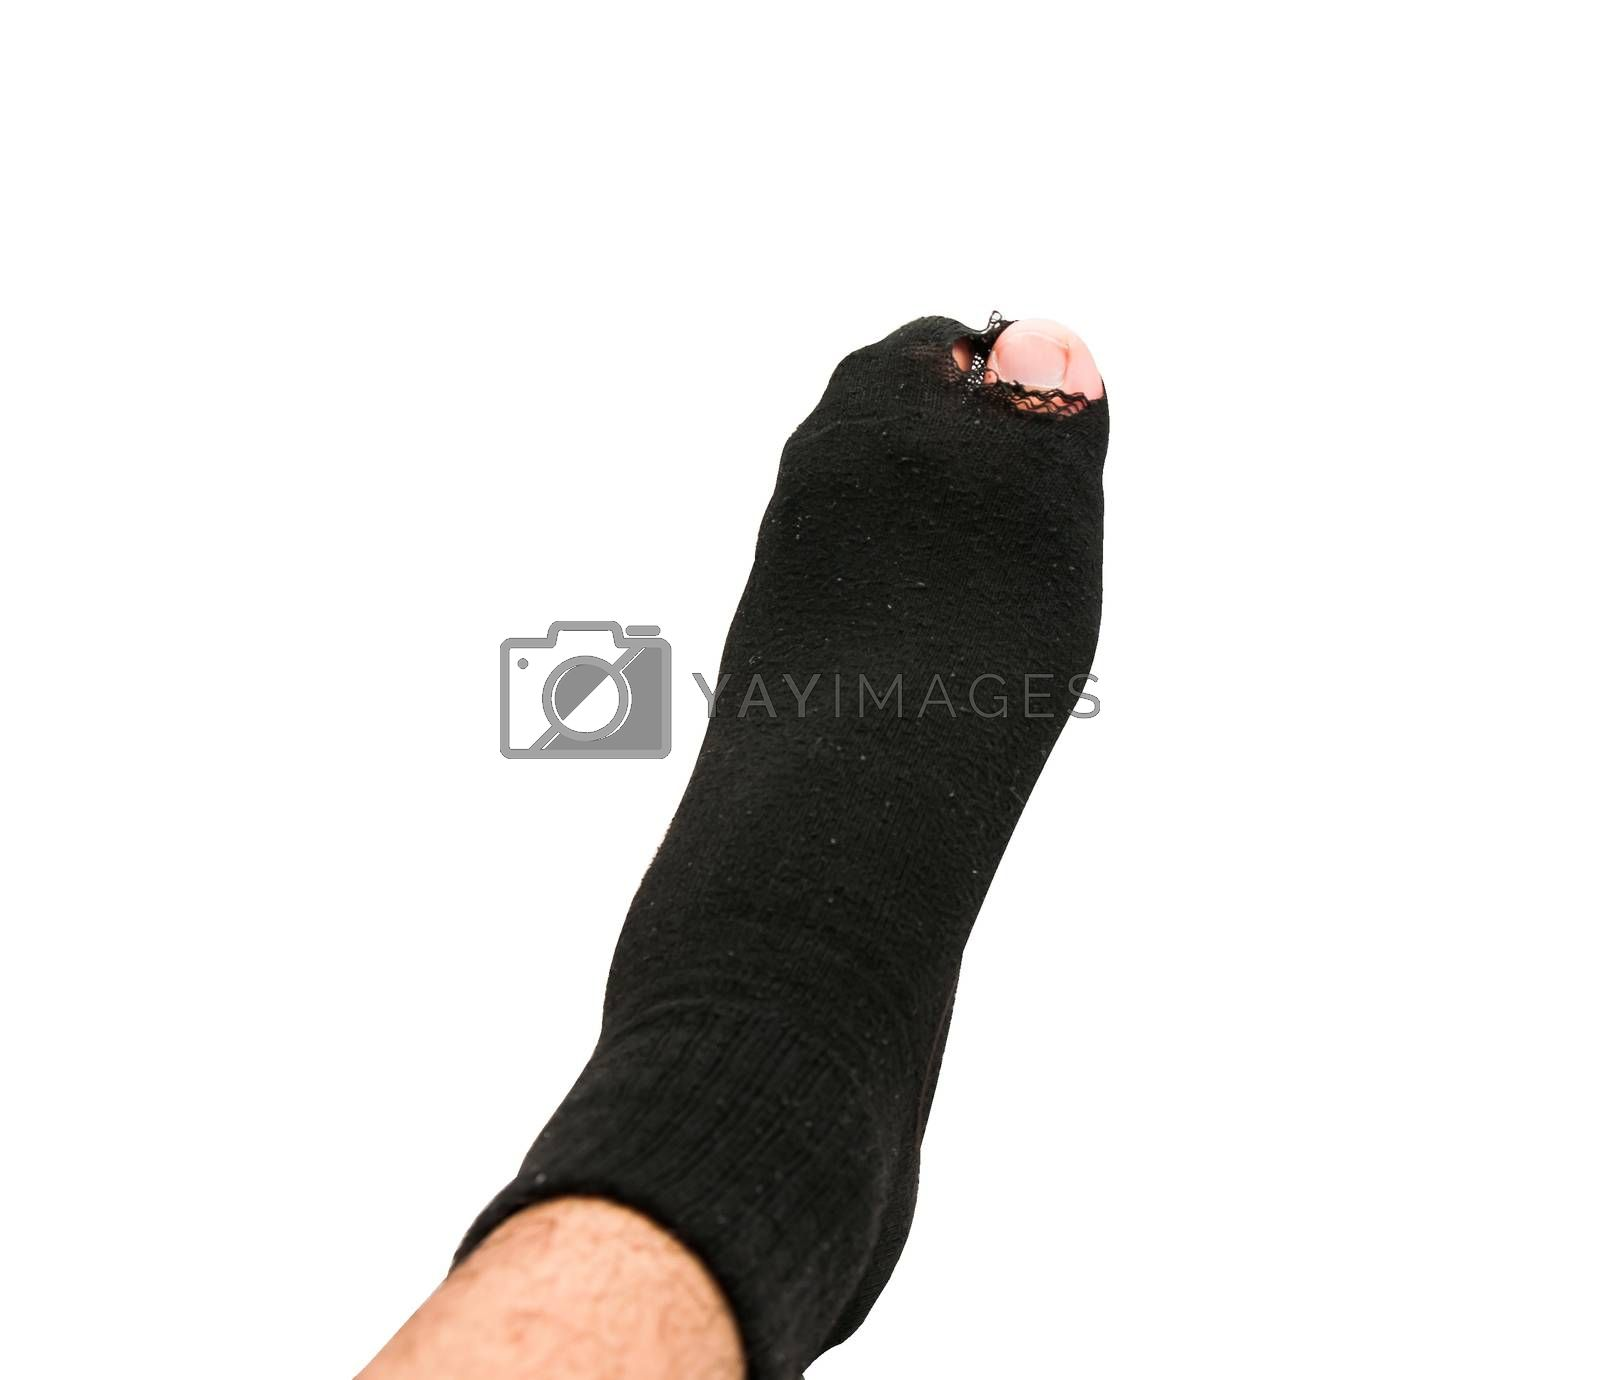 Royalty free image of Foot in old sock and torn by Sorapop